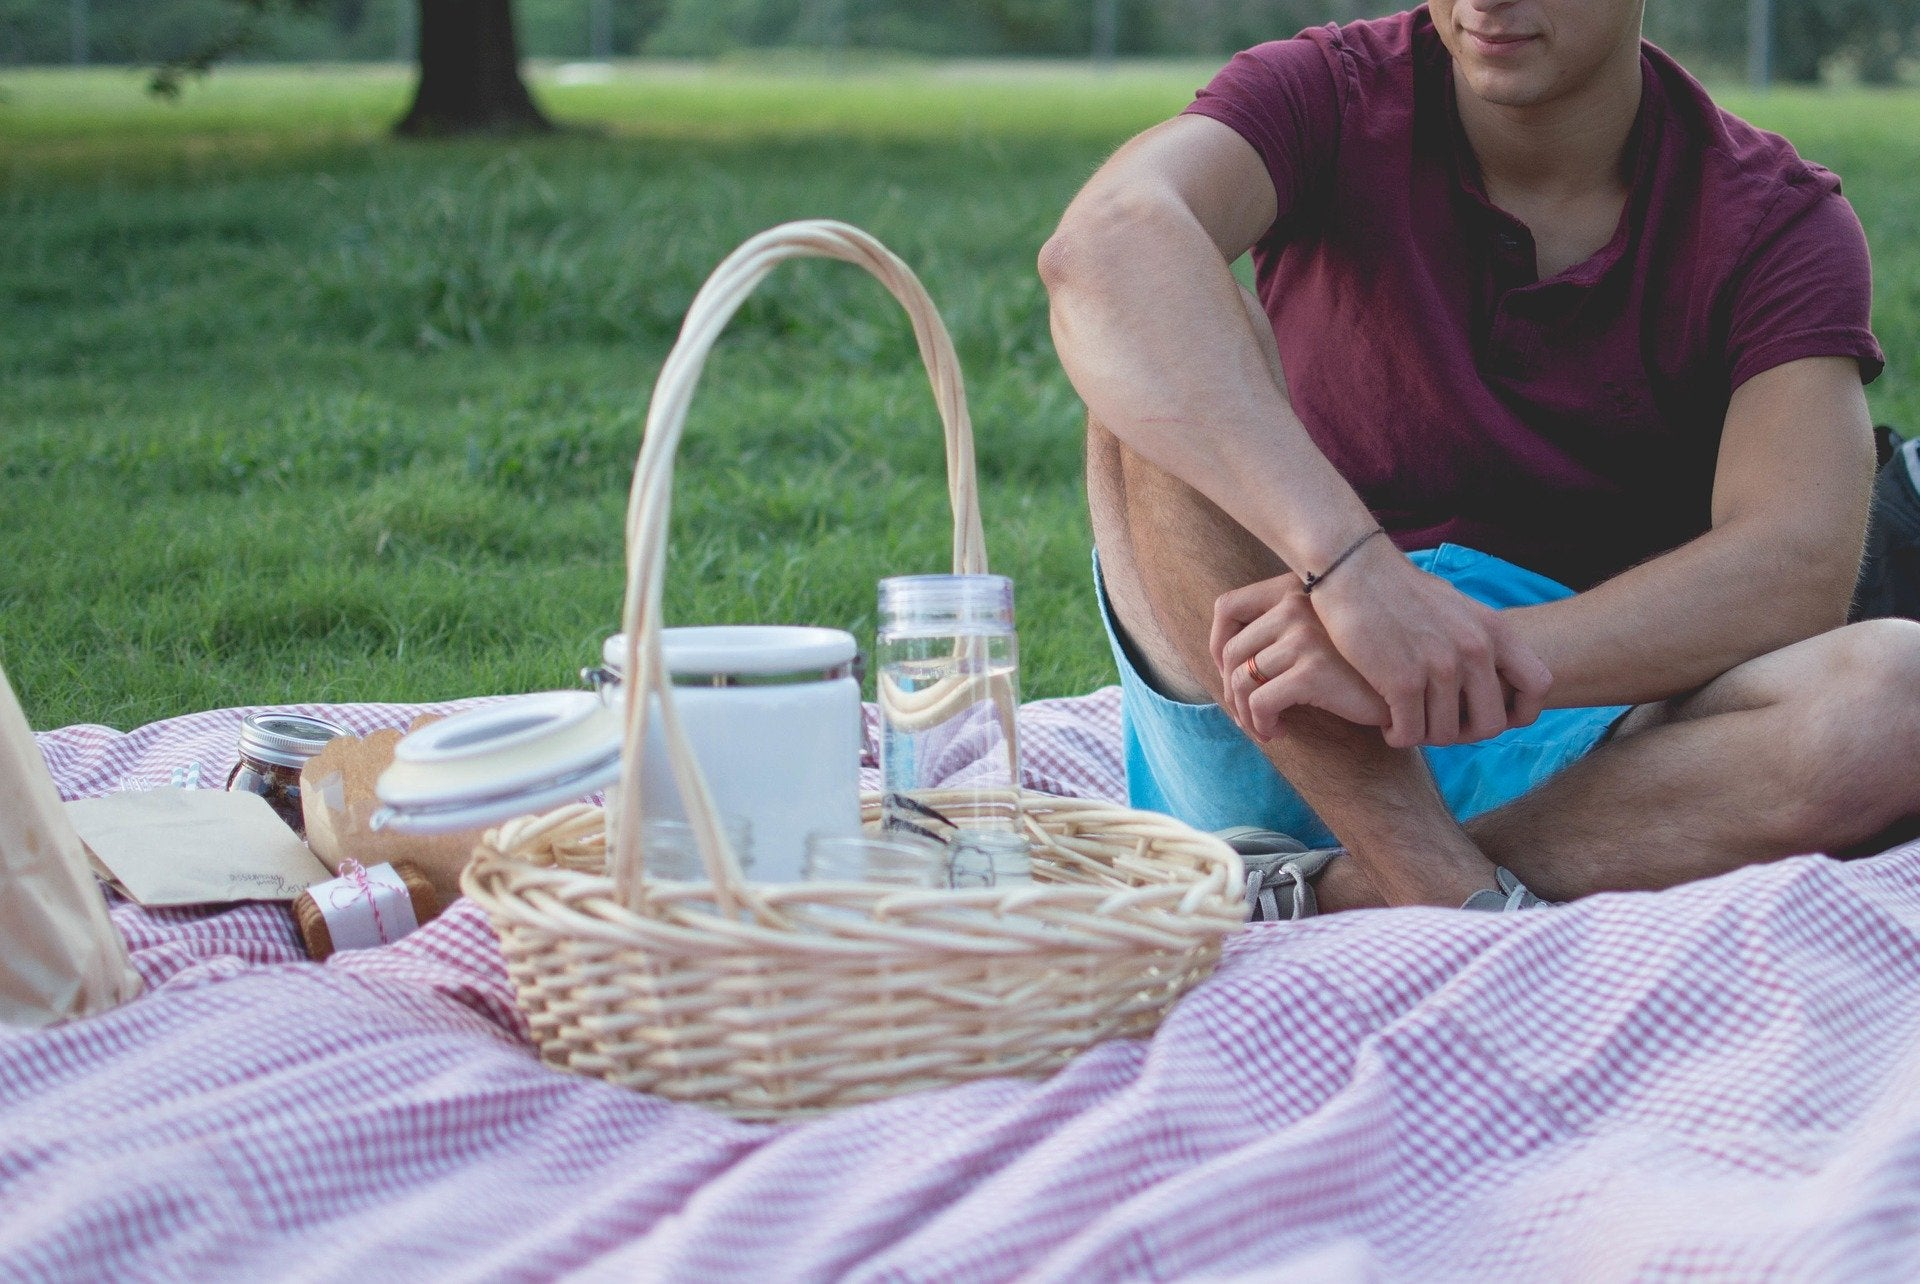 There are so many lovely spots out there to enjoy a picnic...